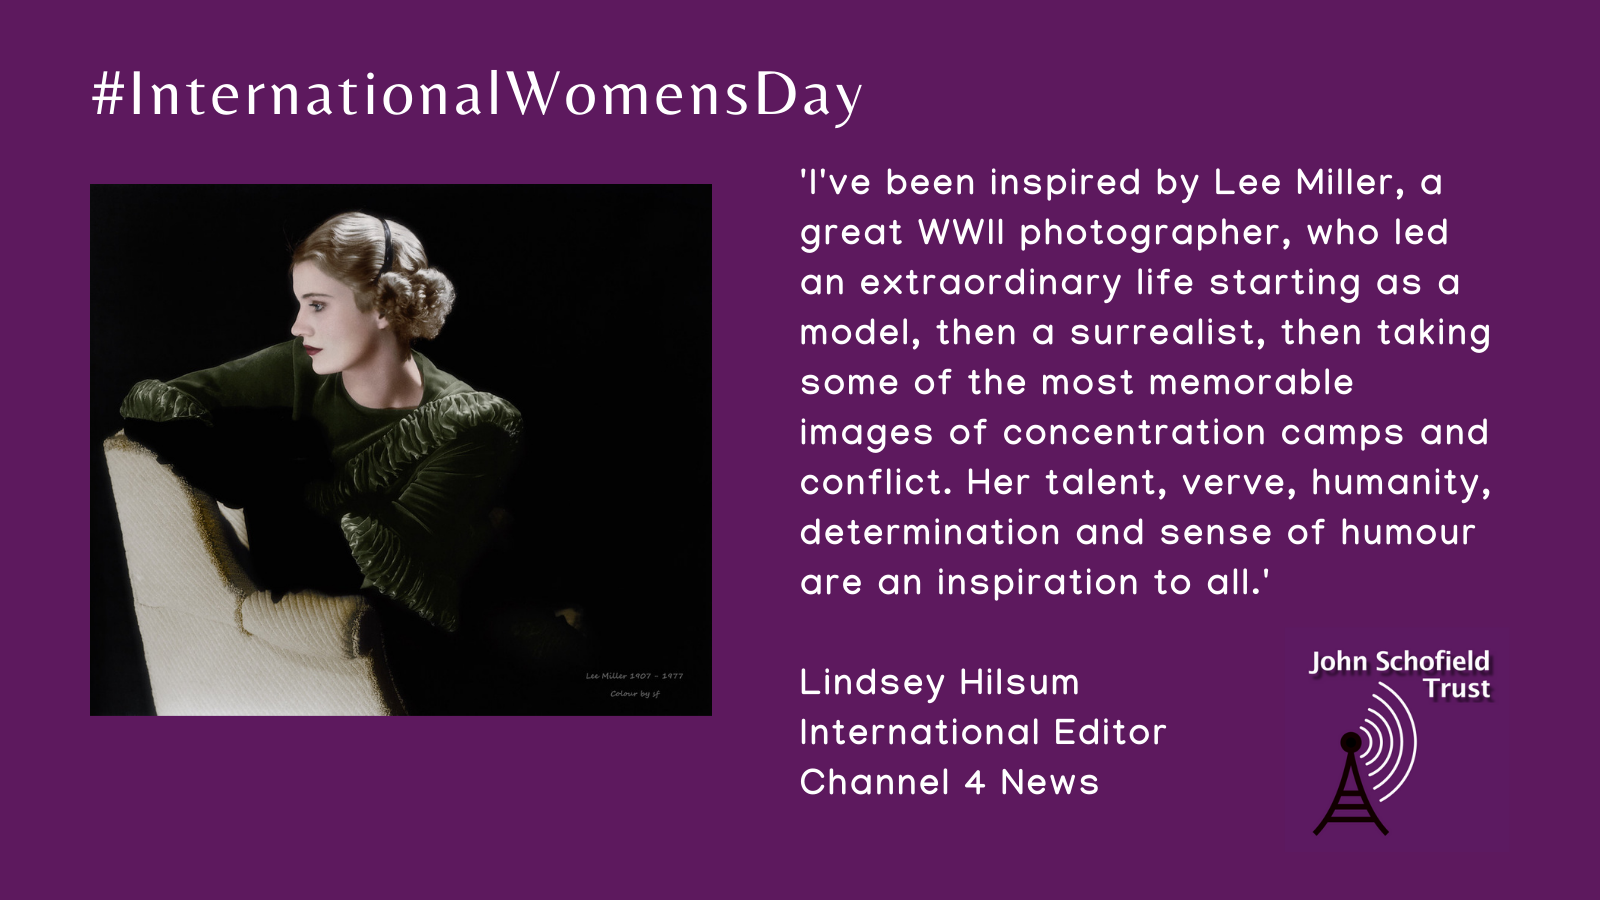 Lindsey Hilsum's inspirational woman for #IWD